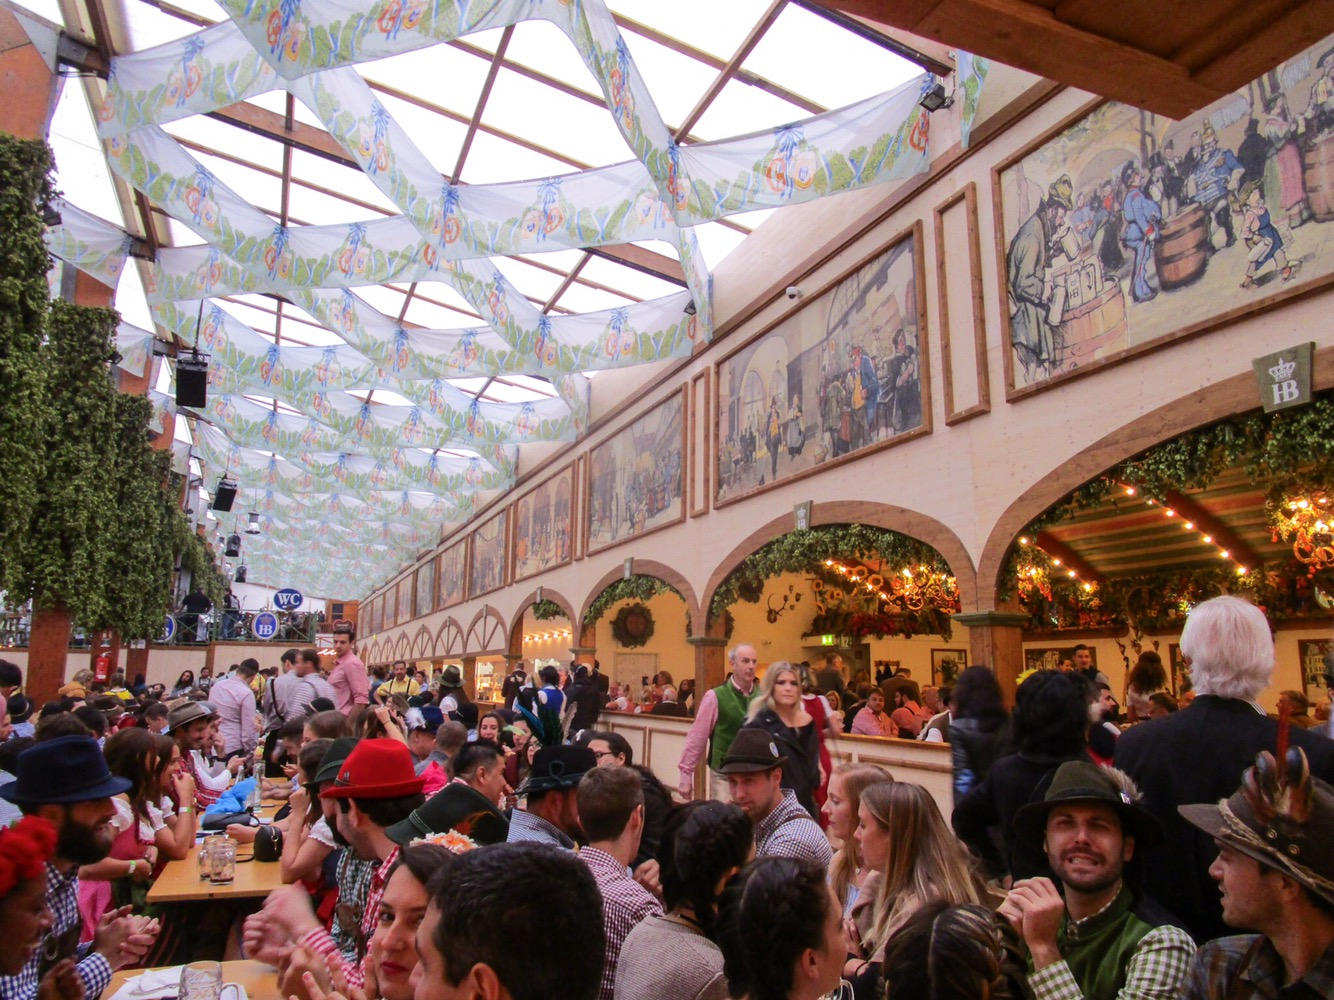 Inside the Hofbräu Festzelt beer tent at Oktoberfest, Munich